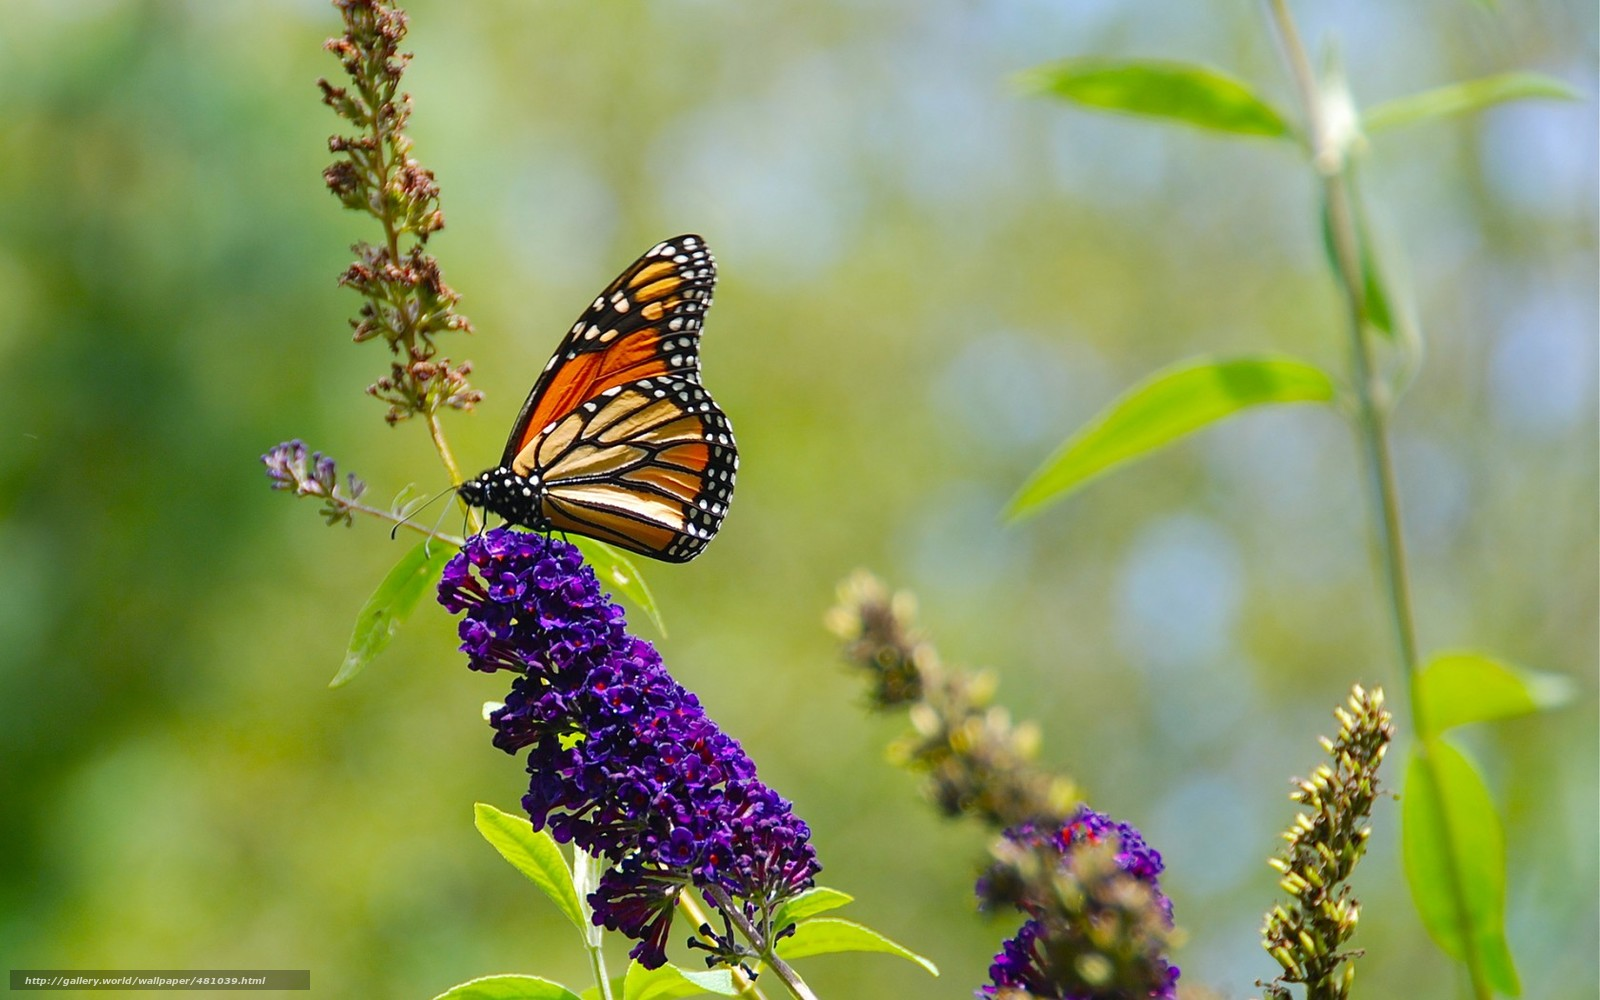 Download Hintergrund Natur  Sommer  Greens  Schmetterling Freie on 895 html